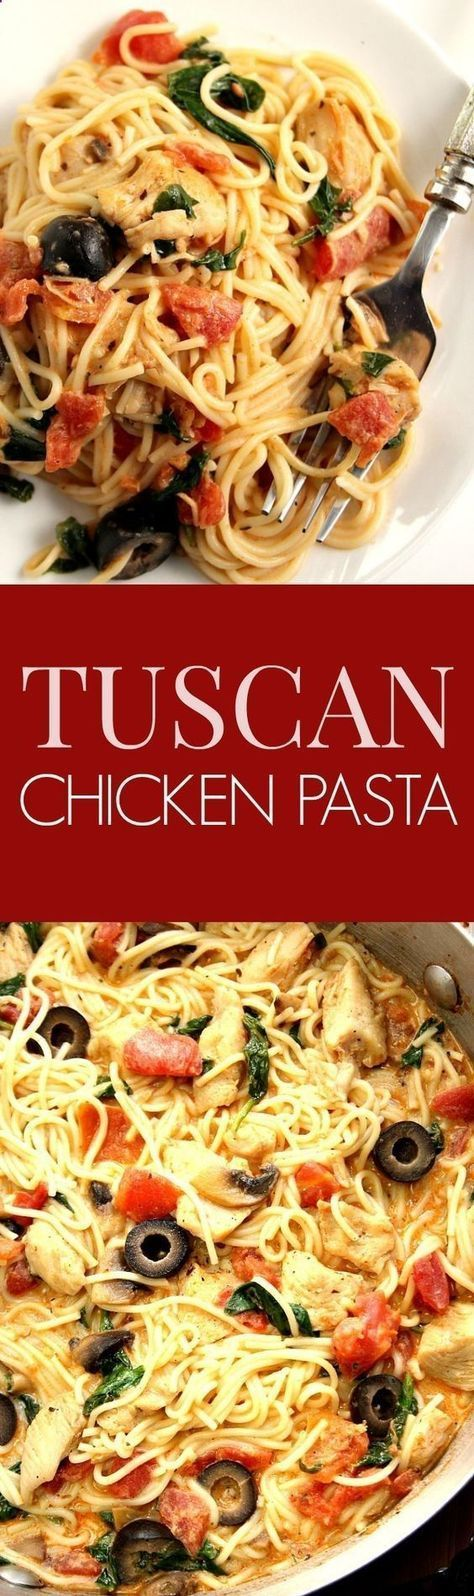 Tuscan Chicken Pasta Recipe - saucy pasta dish with chicken, spinach, tomatoes, olives, mushrooms and angel hair pasta. It cooks in 20 minutes and its pure comfort food for the soul! #pastafoodrecipes